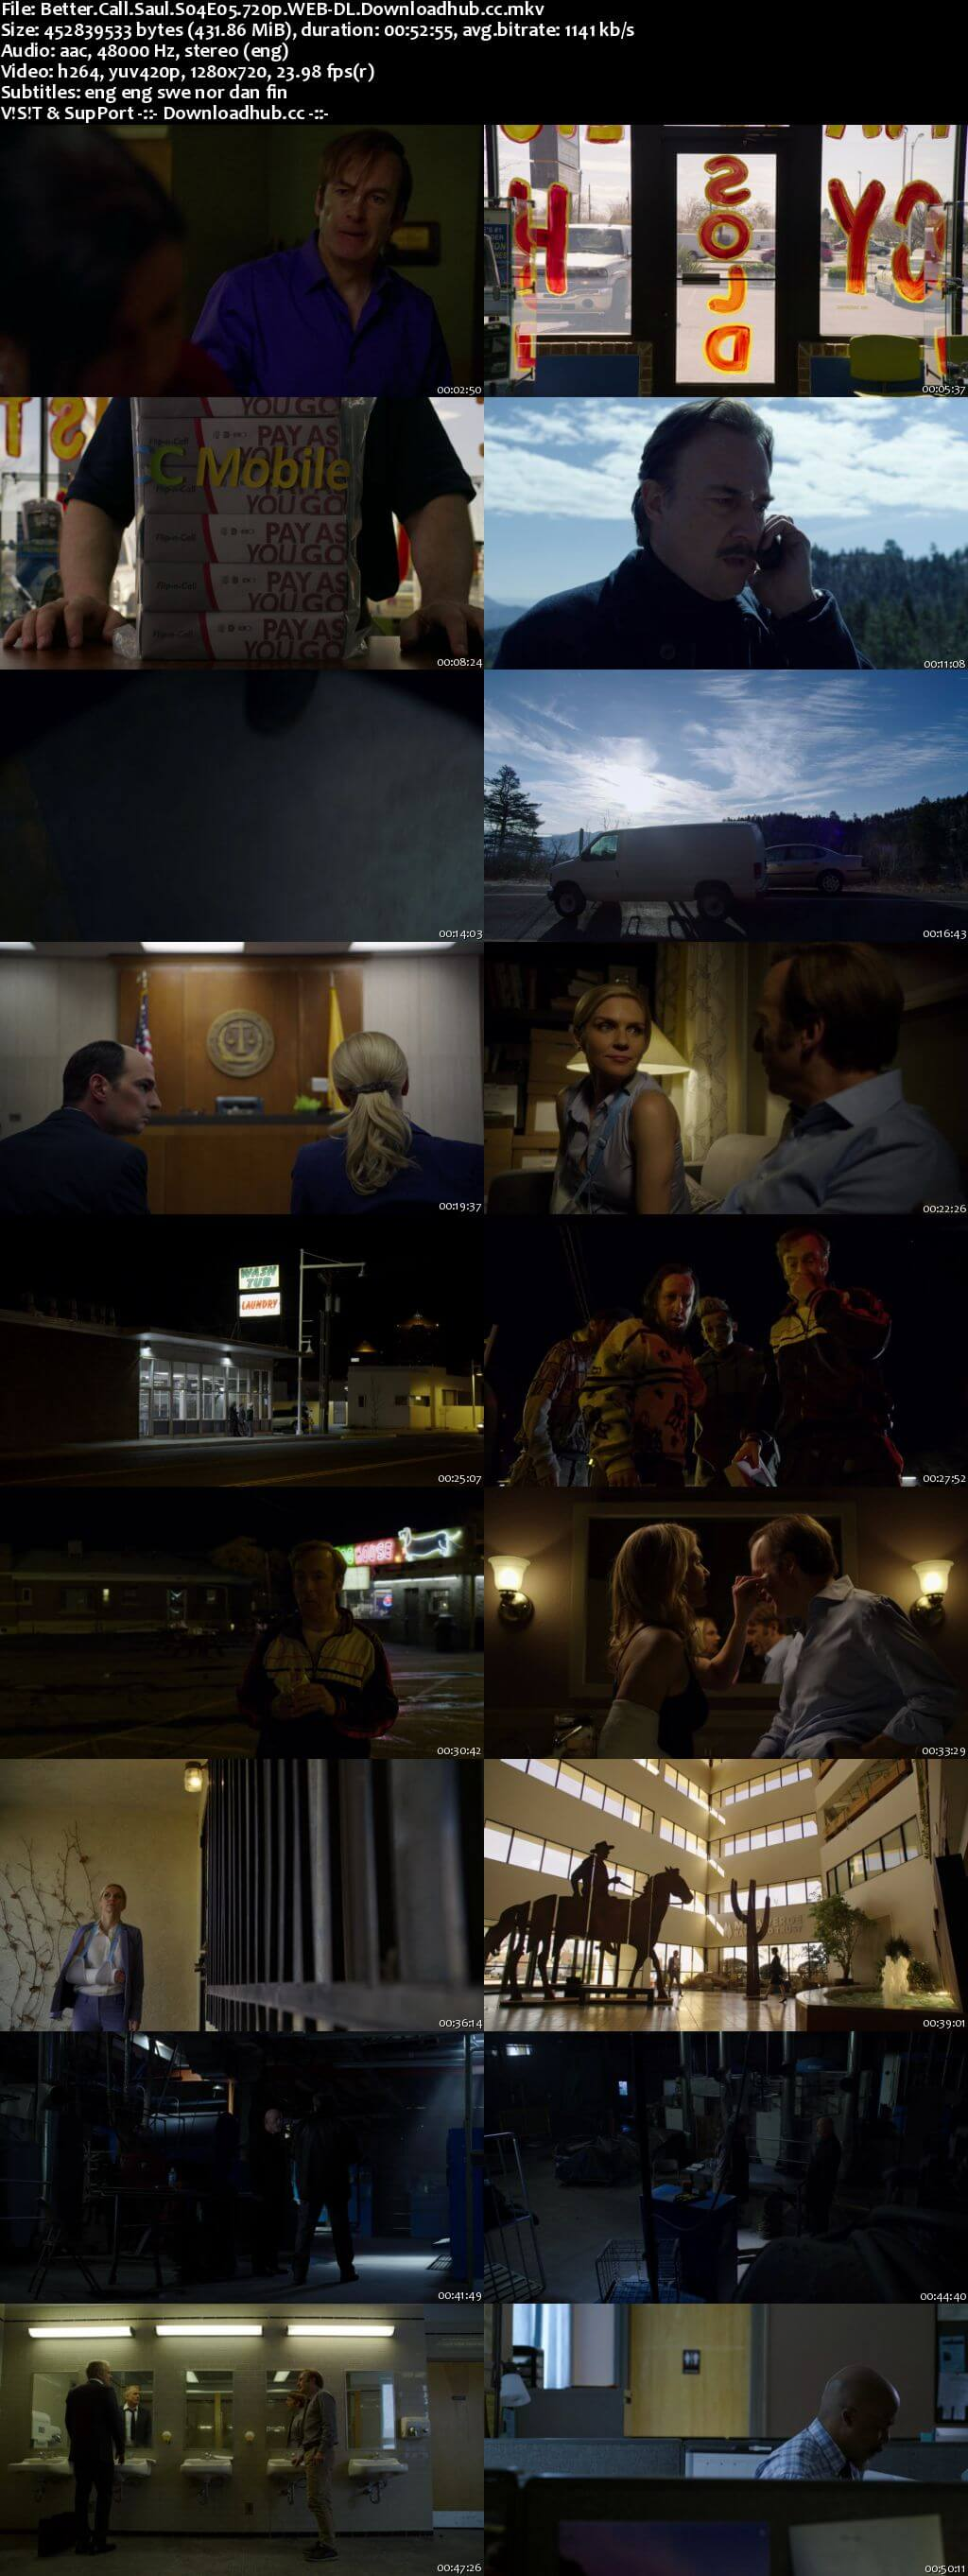 Better Call Saul S04E05 400MB WEB-DL 720p x264 MSubs